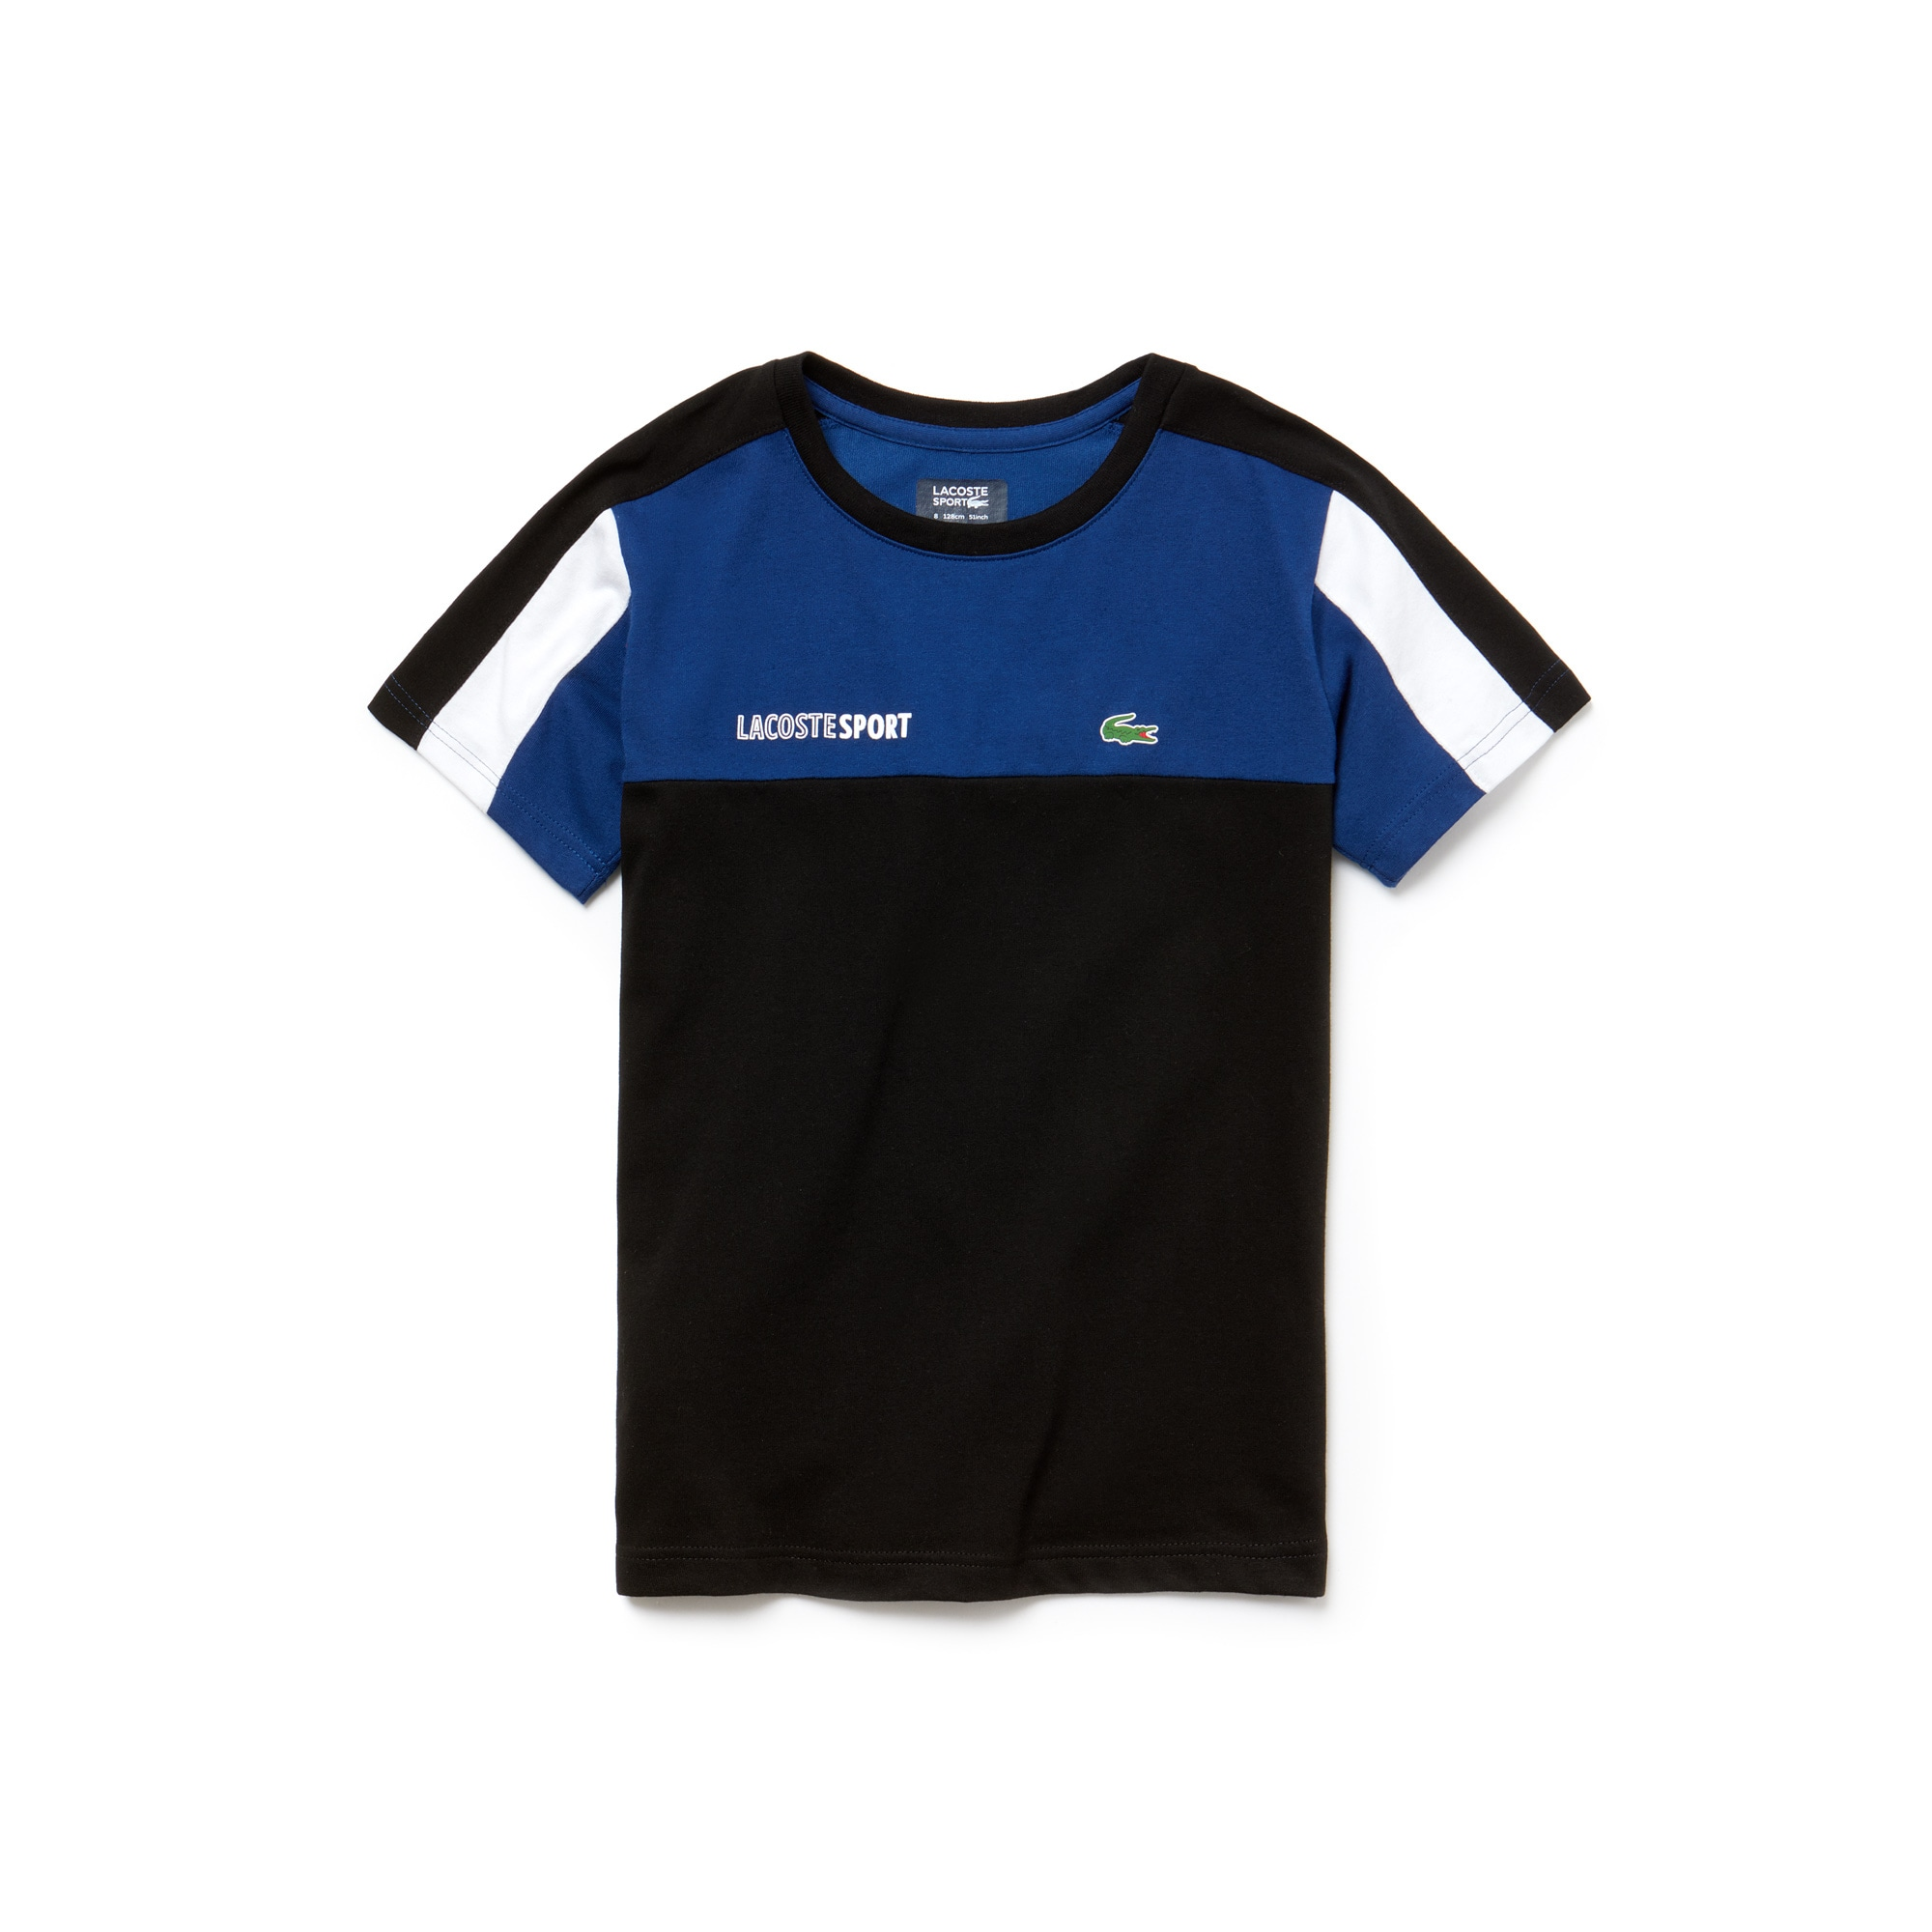 Boys' Lacoste SPORT Crew Neck Colorblock Jersey Tennis T-shirt